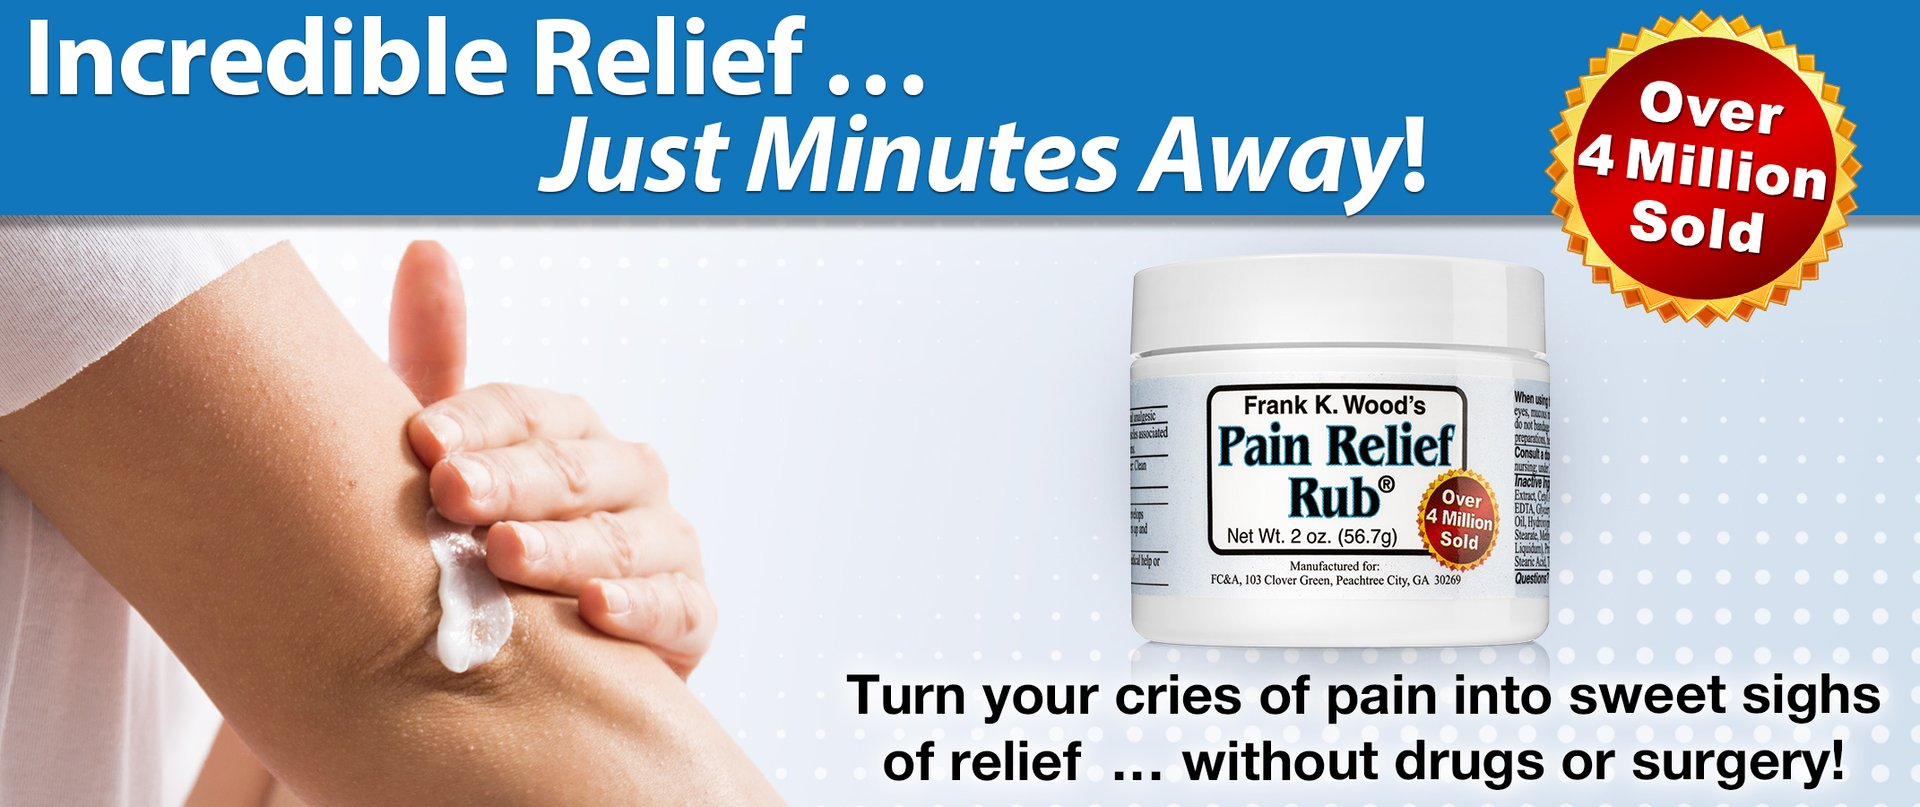 Frank K. Wood's Pain Relief Rub®